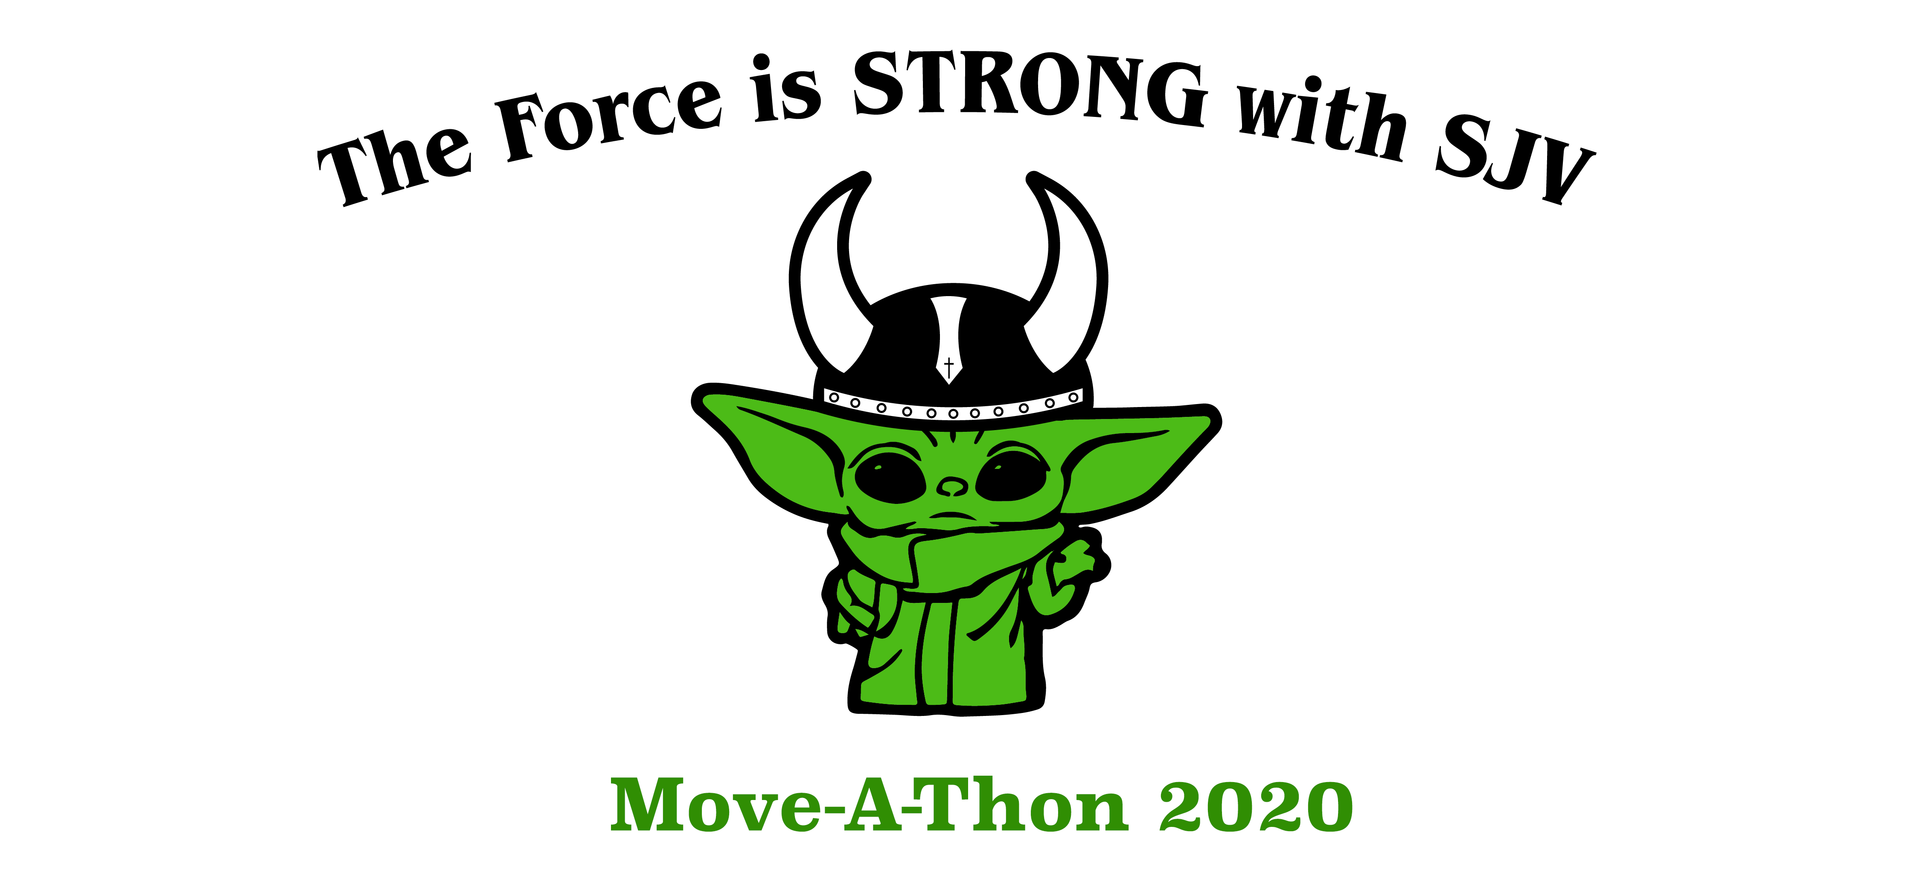 SJV Virtual Move-A-Thon 2020